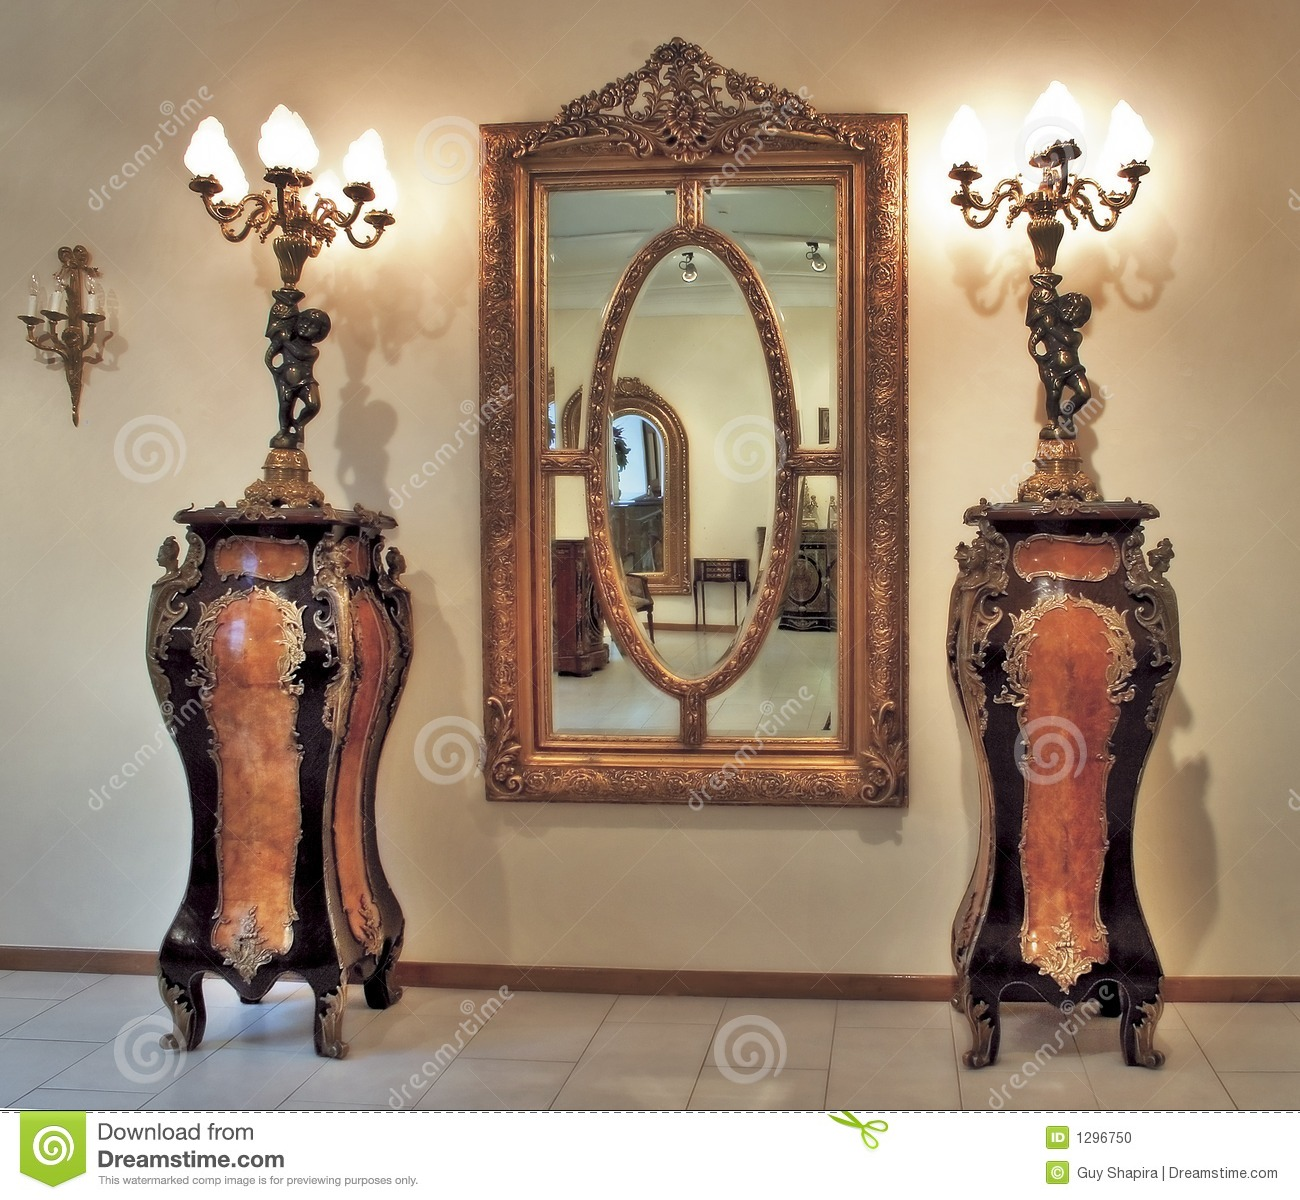 Old Time Furniture Stock Photo Image Of Ornate Antique